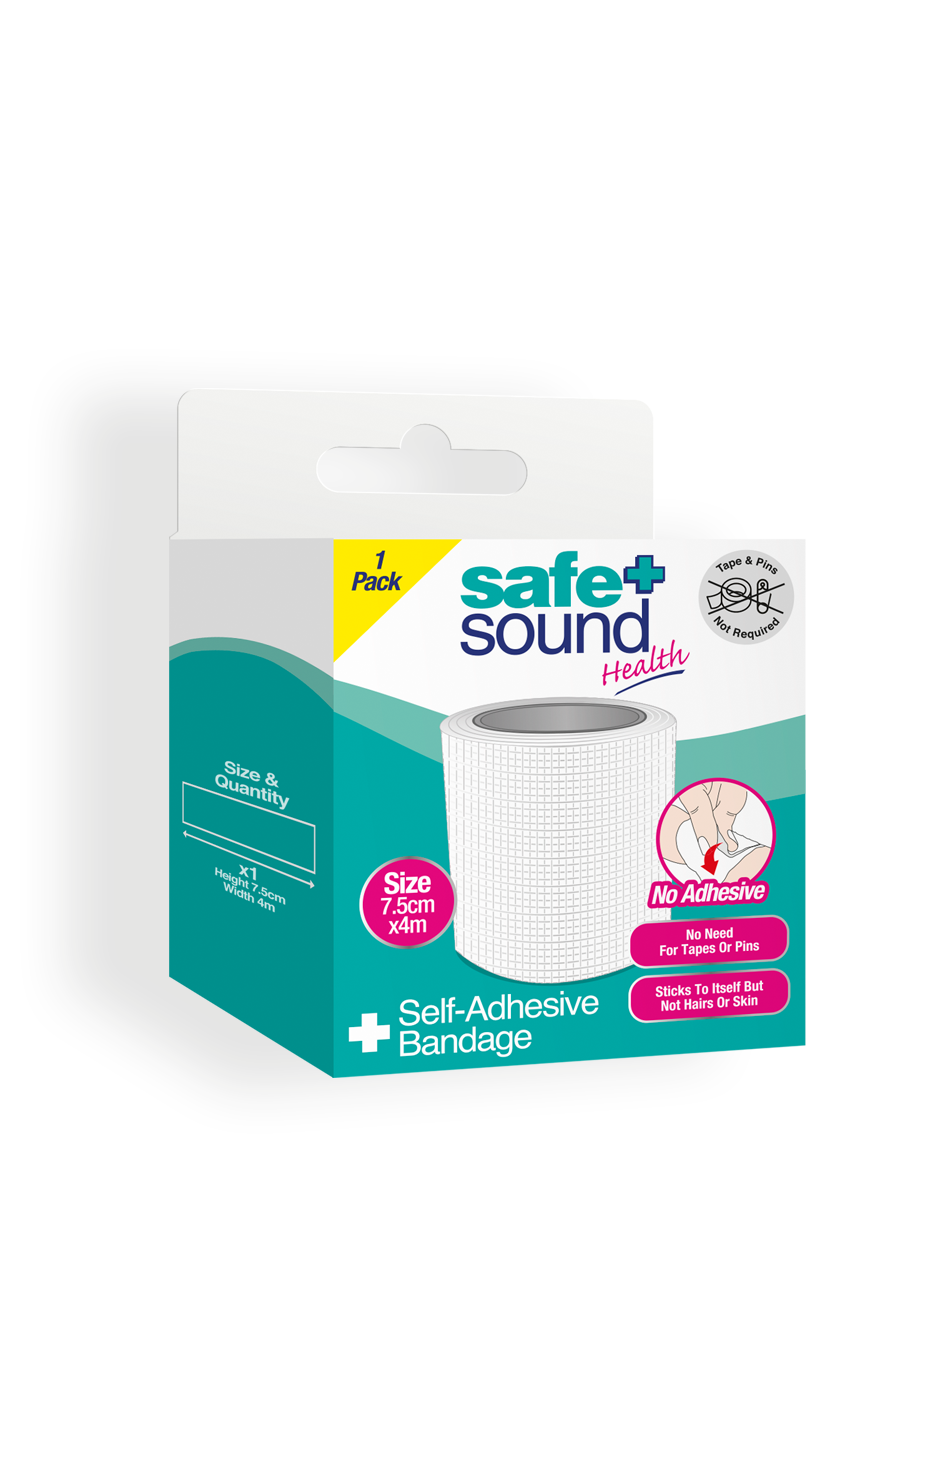 Safe and Sound Health's Self Adhesive Bandage 7.5cm x 4m